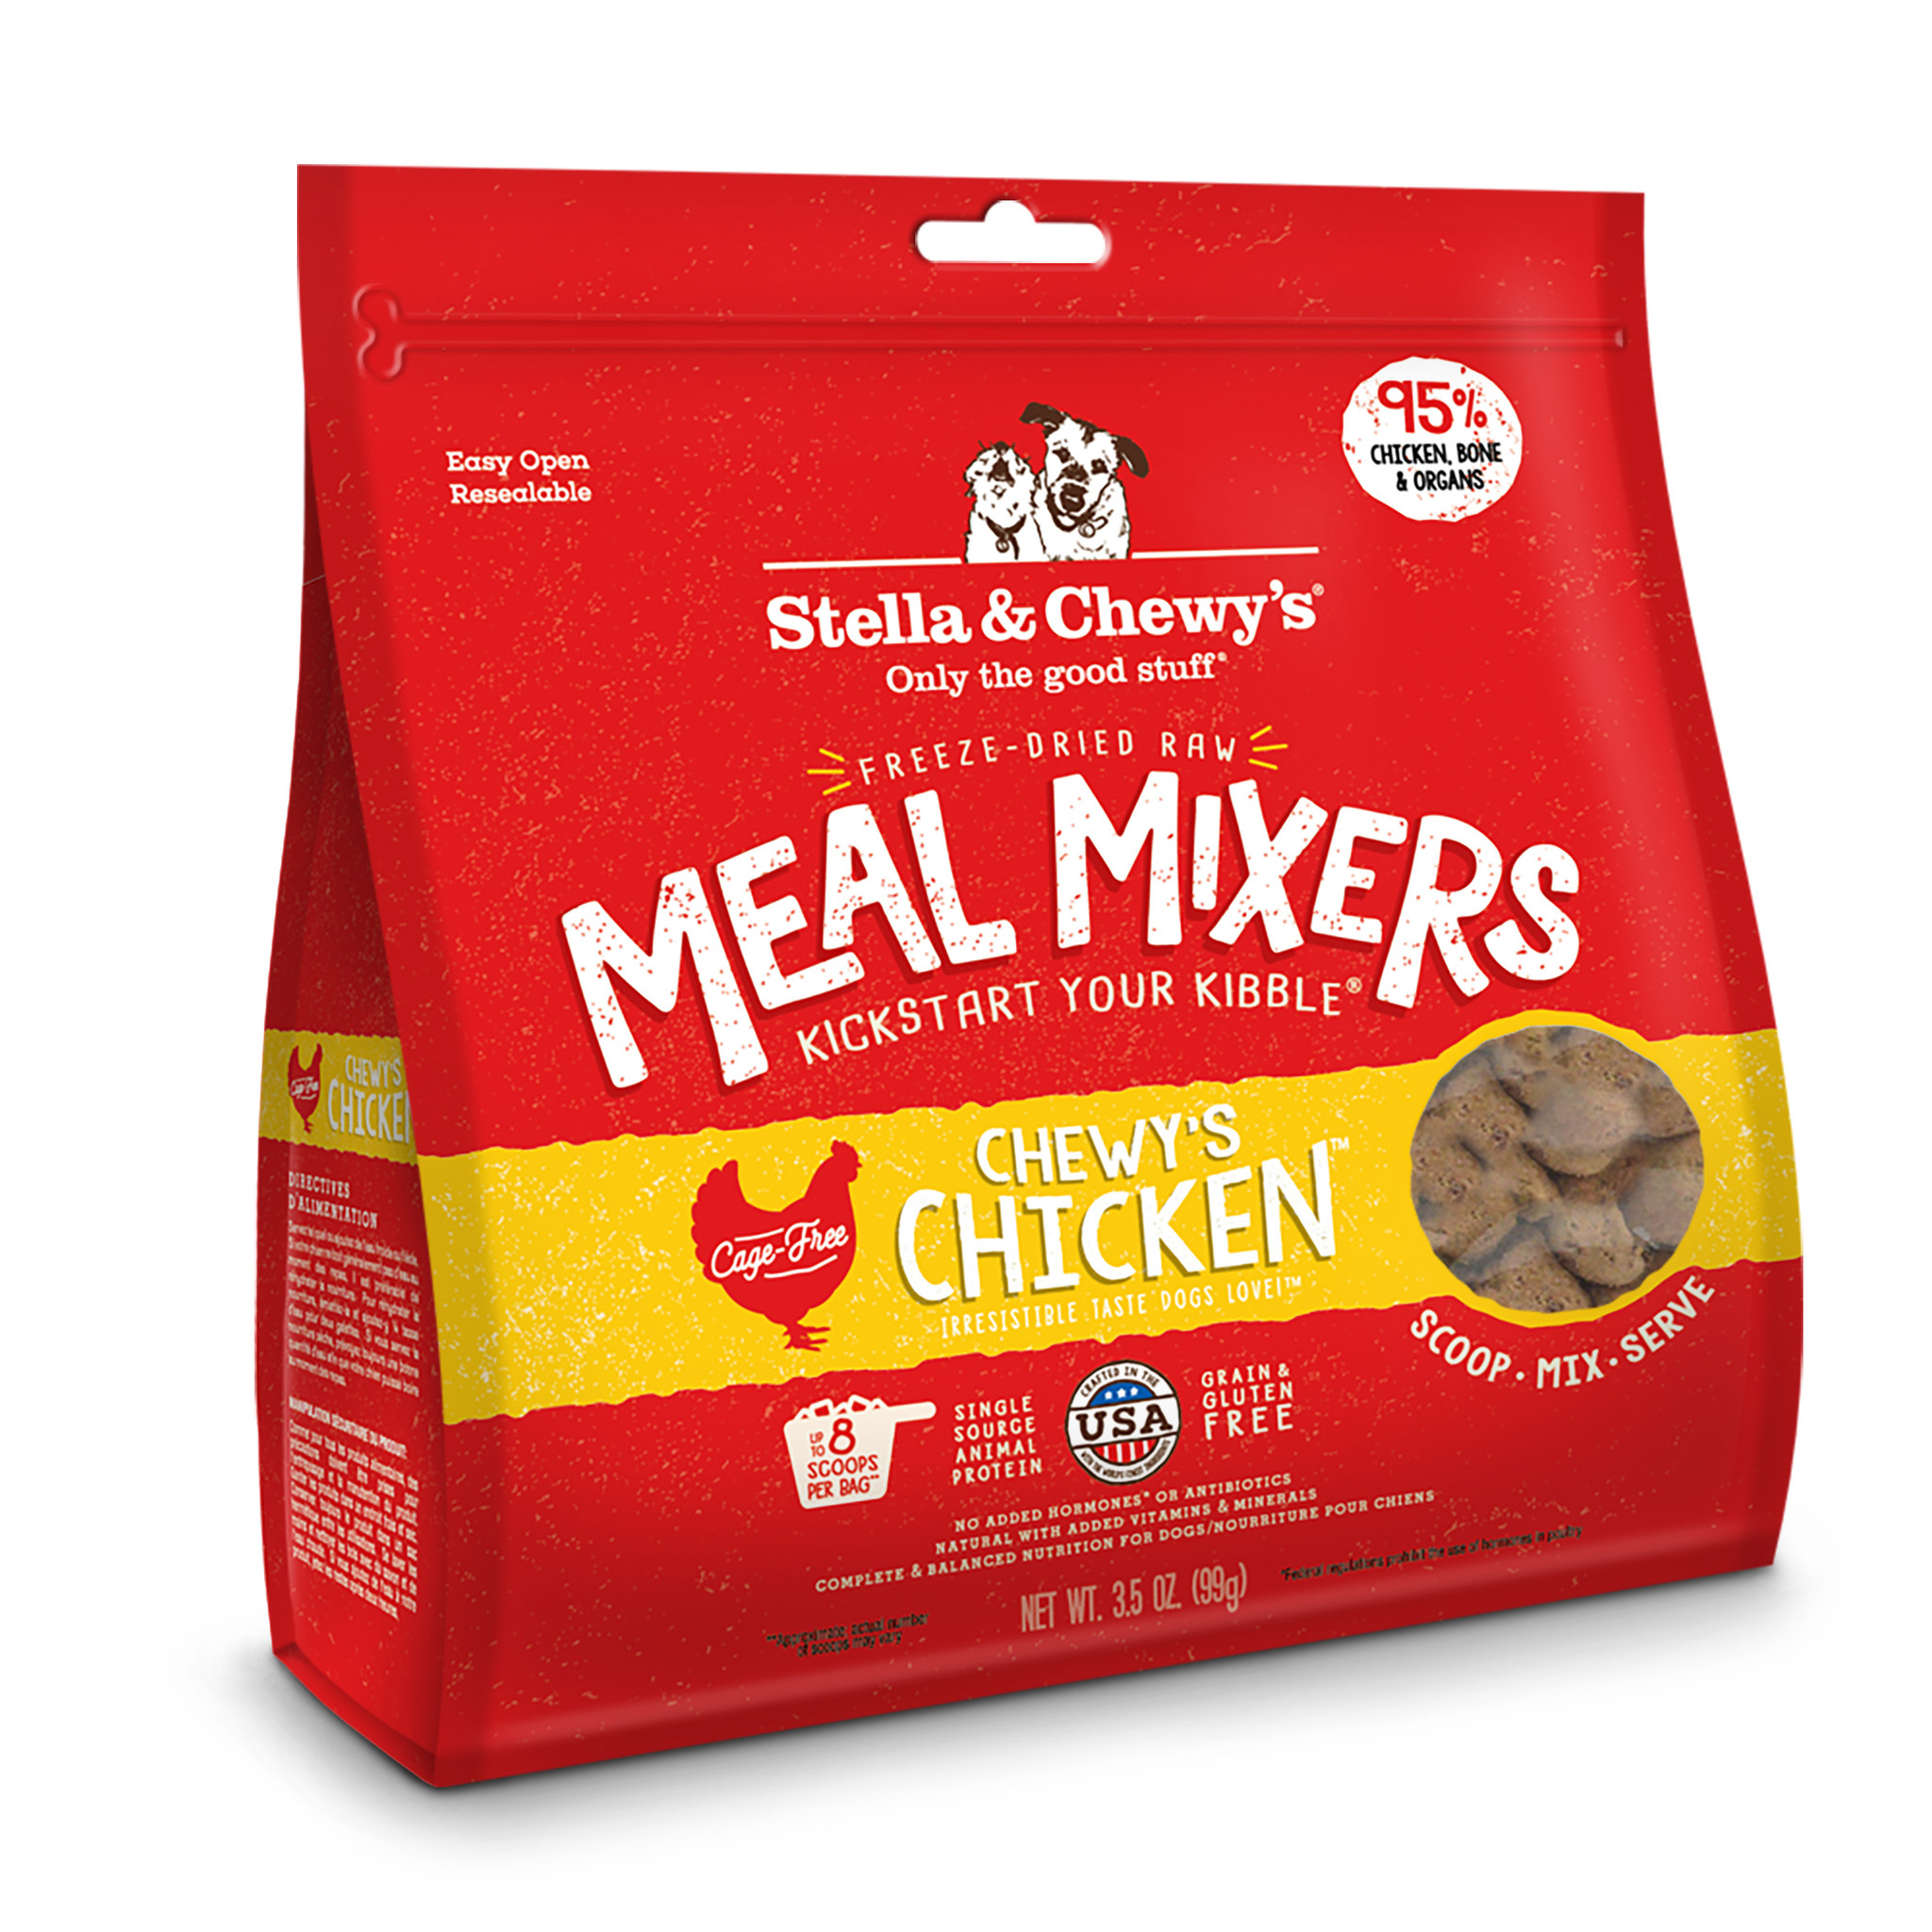 STELLA & CHEWYS Stella & Chewys Chewy's Chicken Meal Mixer